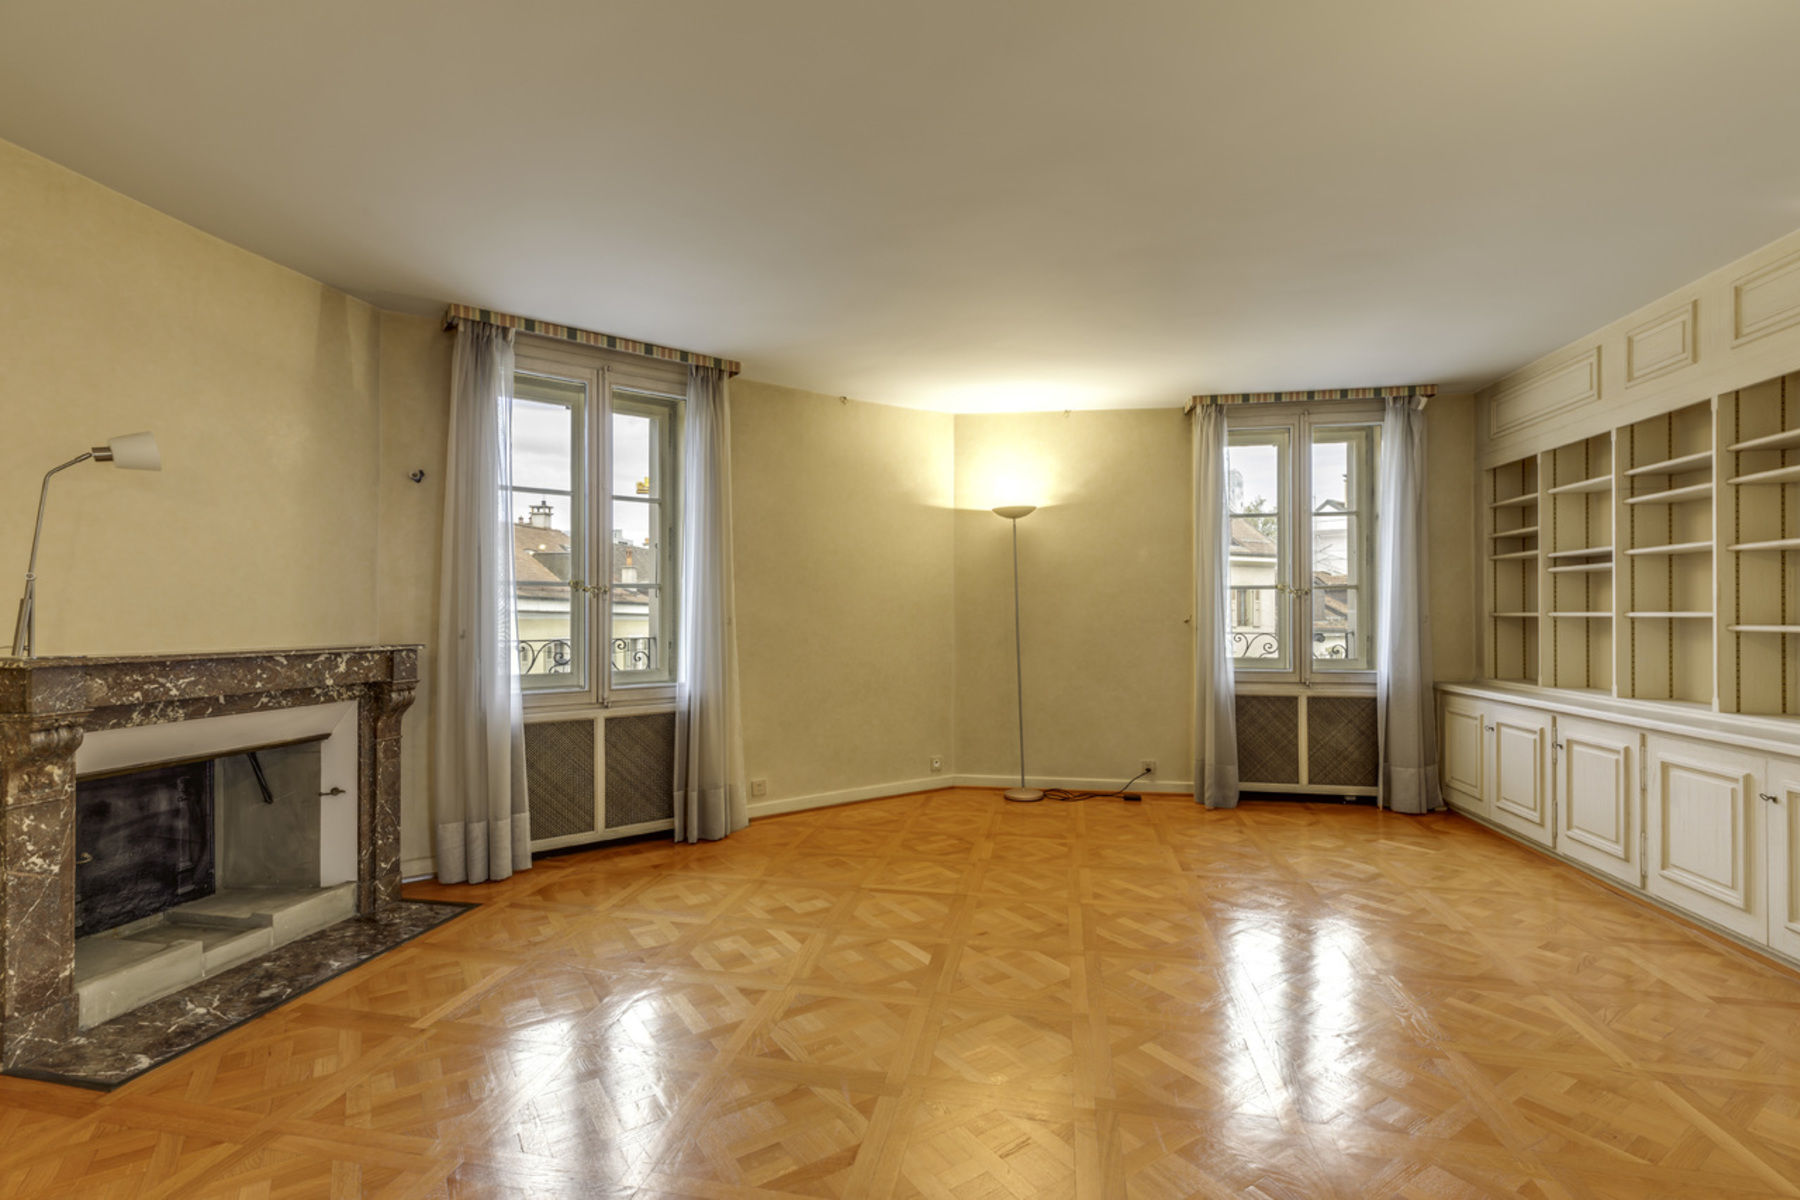 Single Family Home for Active at Magnificent townhouse in the heart of Carouge old town Genève Geneva, Geneva 1208 Switzerland